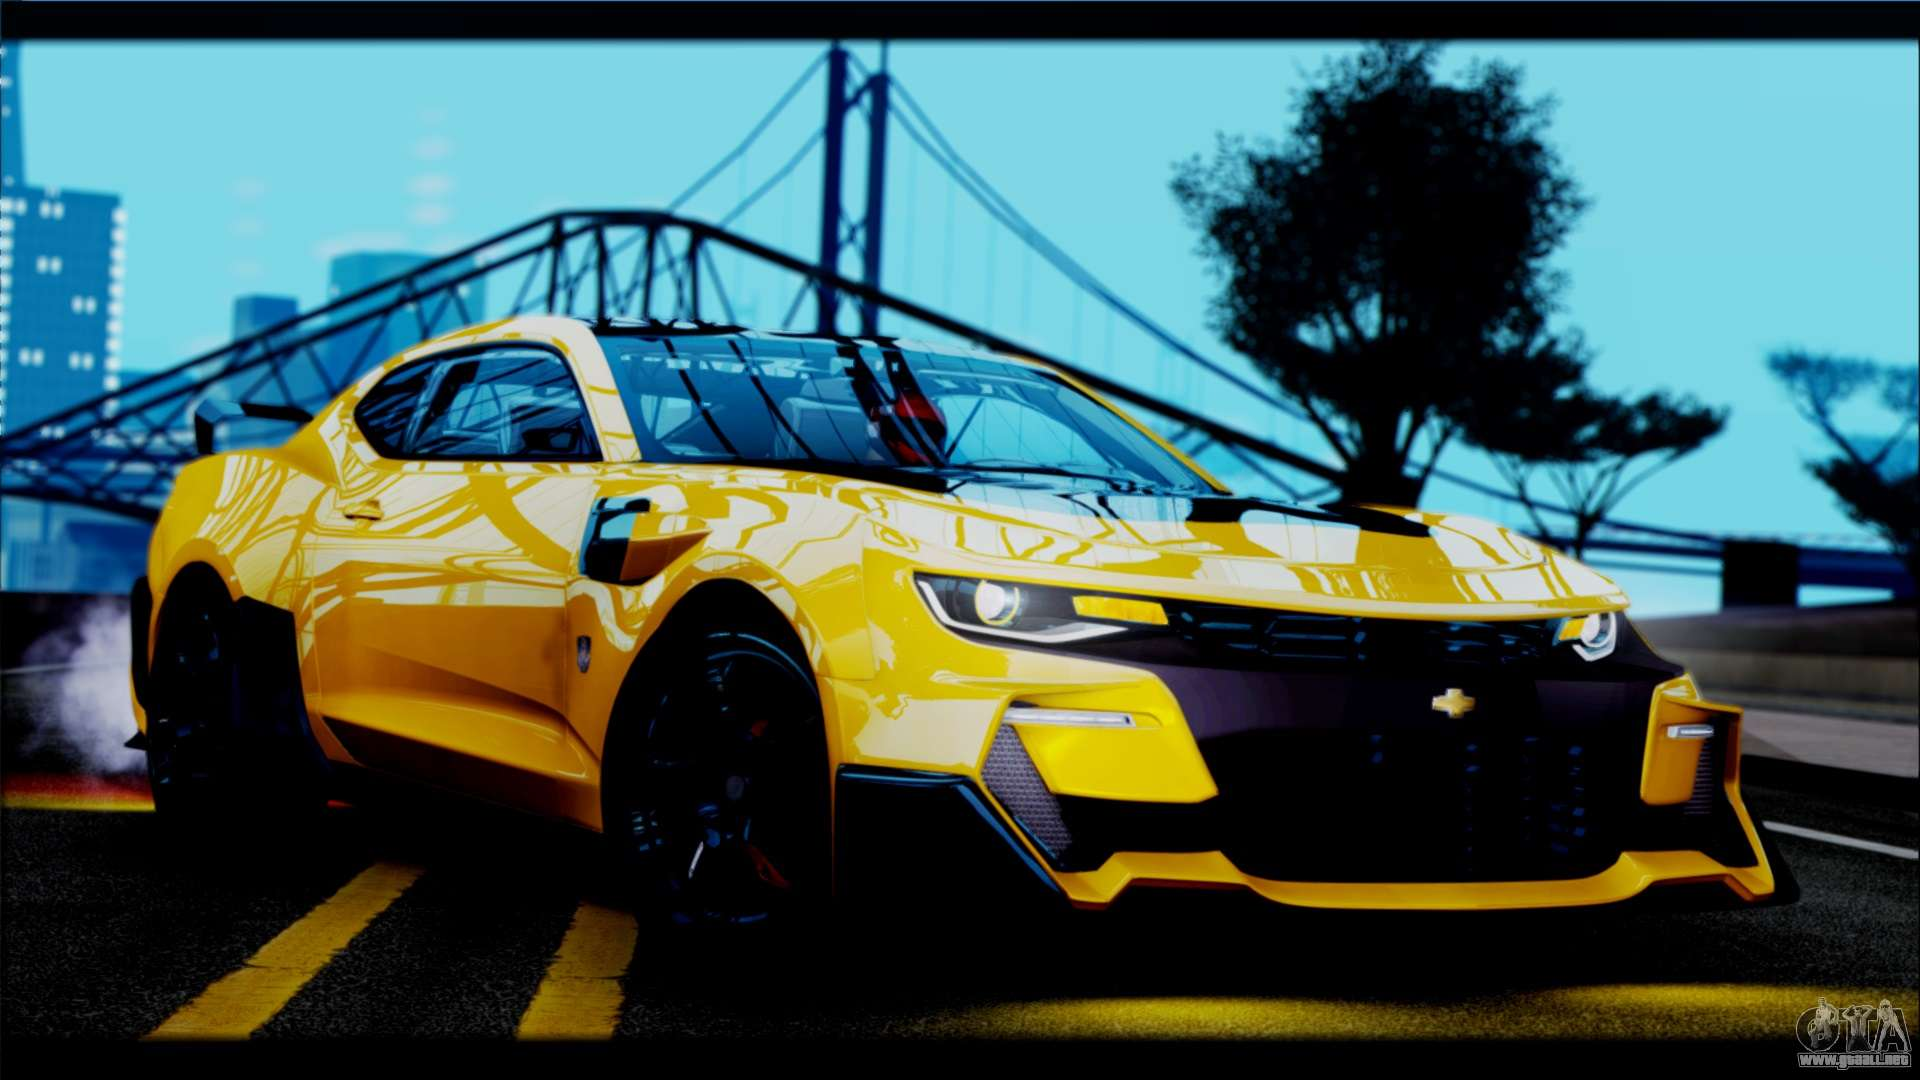 chevrolet camaro transformers 1 html with 83615 Chevrolet Camaro Ss 2016 Bumblebee Tf 5 on Bumblebee Transformers 4 1967 besides 2016 Camaro Ss Gets Bumblebee Visual Treatment Celebrates Michael Bay S Transformers 5 103667 moreover 2016 Camaro Ss Wallpaper also 8596752 as well 2015 Cobalt Ss.